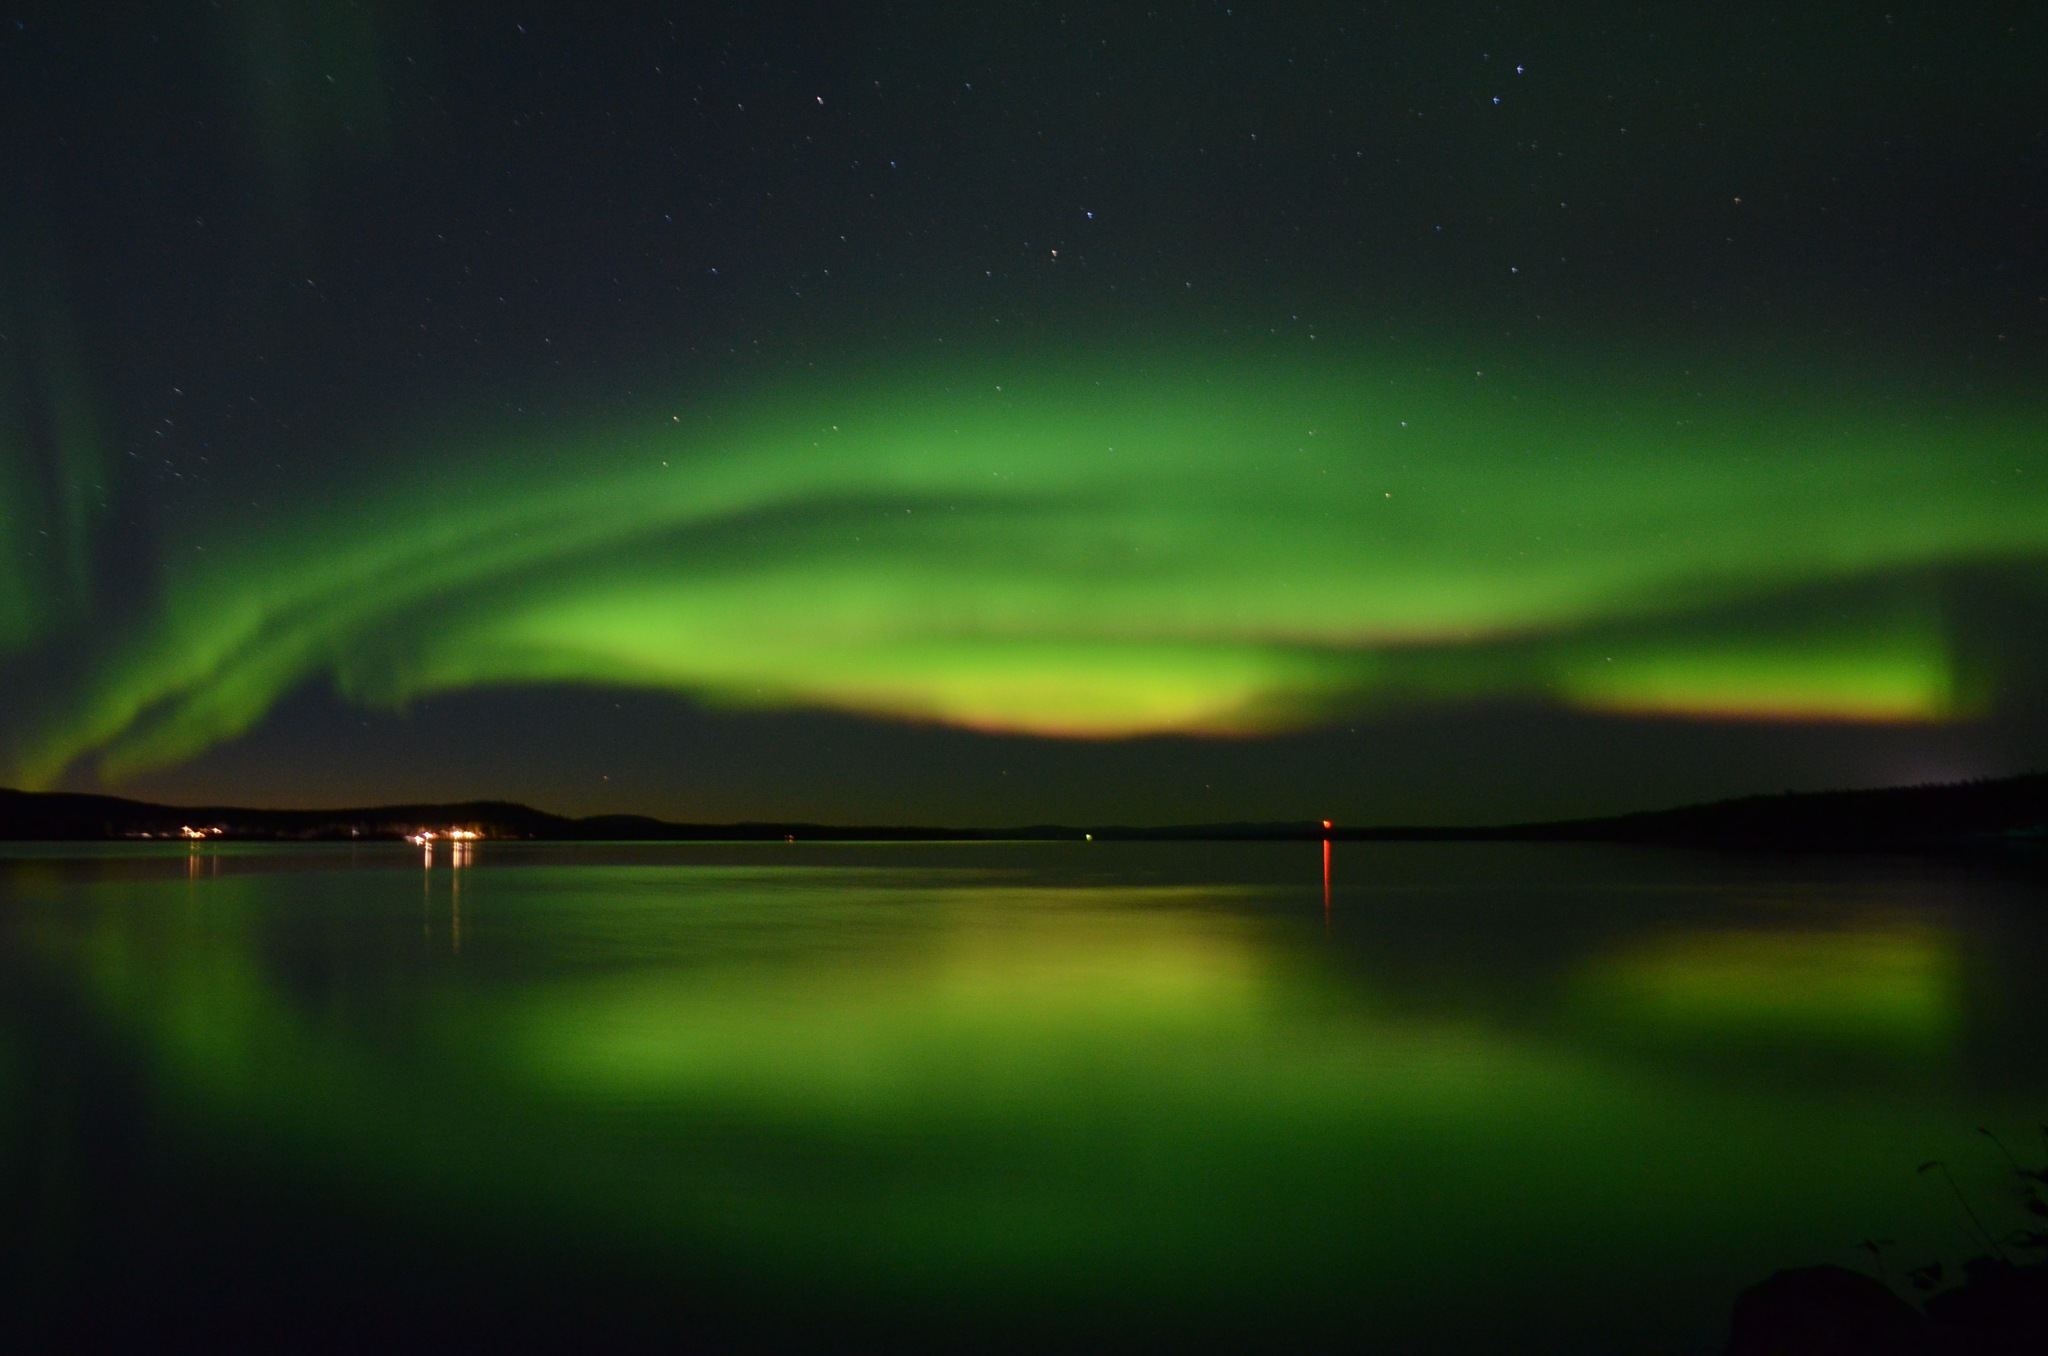 Aurora reflections by steve77